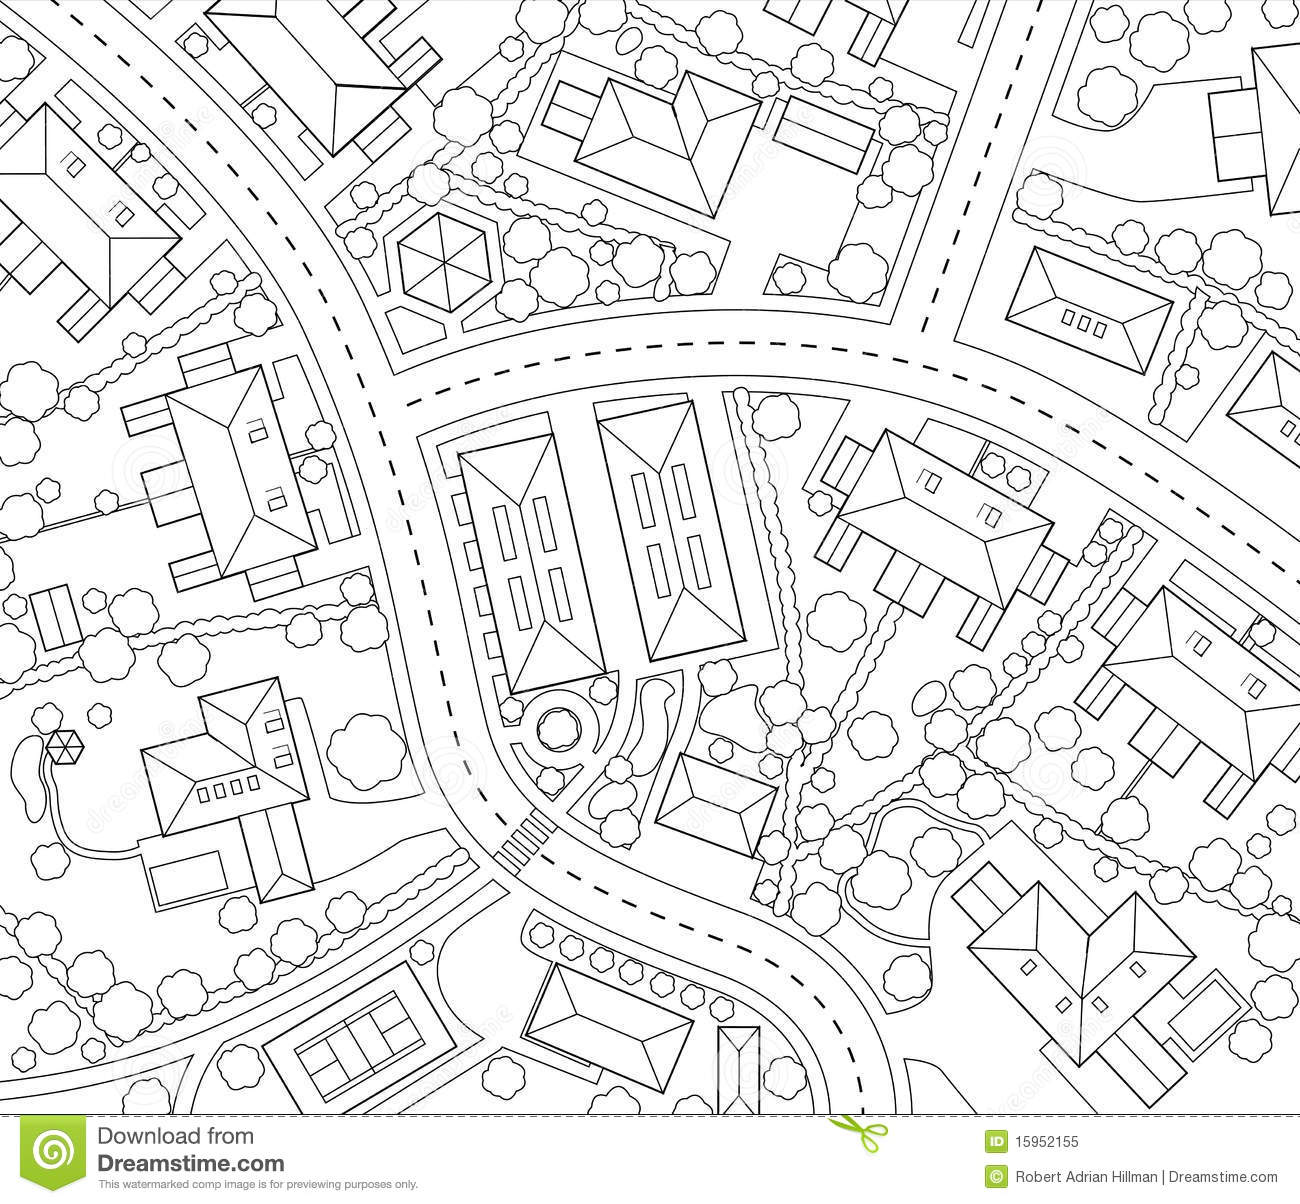 Generic road map clipart vector black and white stock Road map clipart outline - ClipartFest vector black and white stock